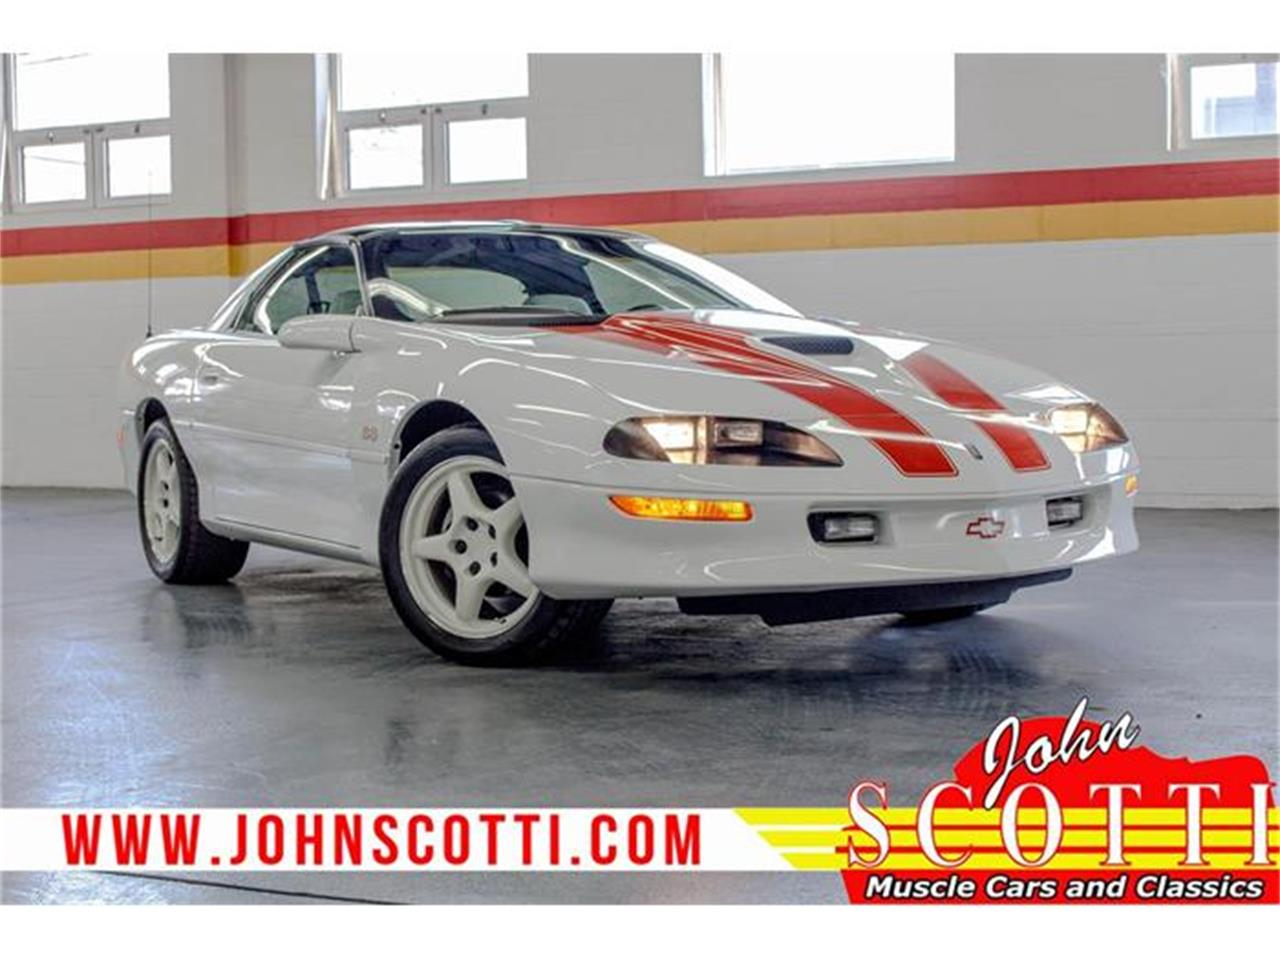 Large Picture of '97 Chevrolet Camaro SS Z28 Offered by John Scotti Classic Cars - G9NR